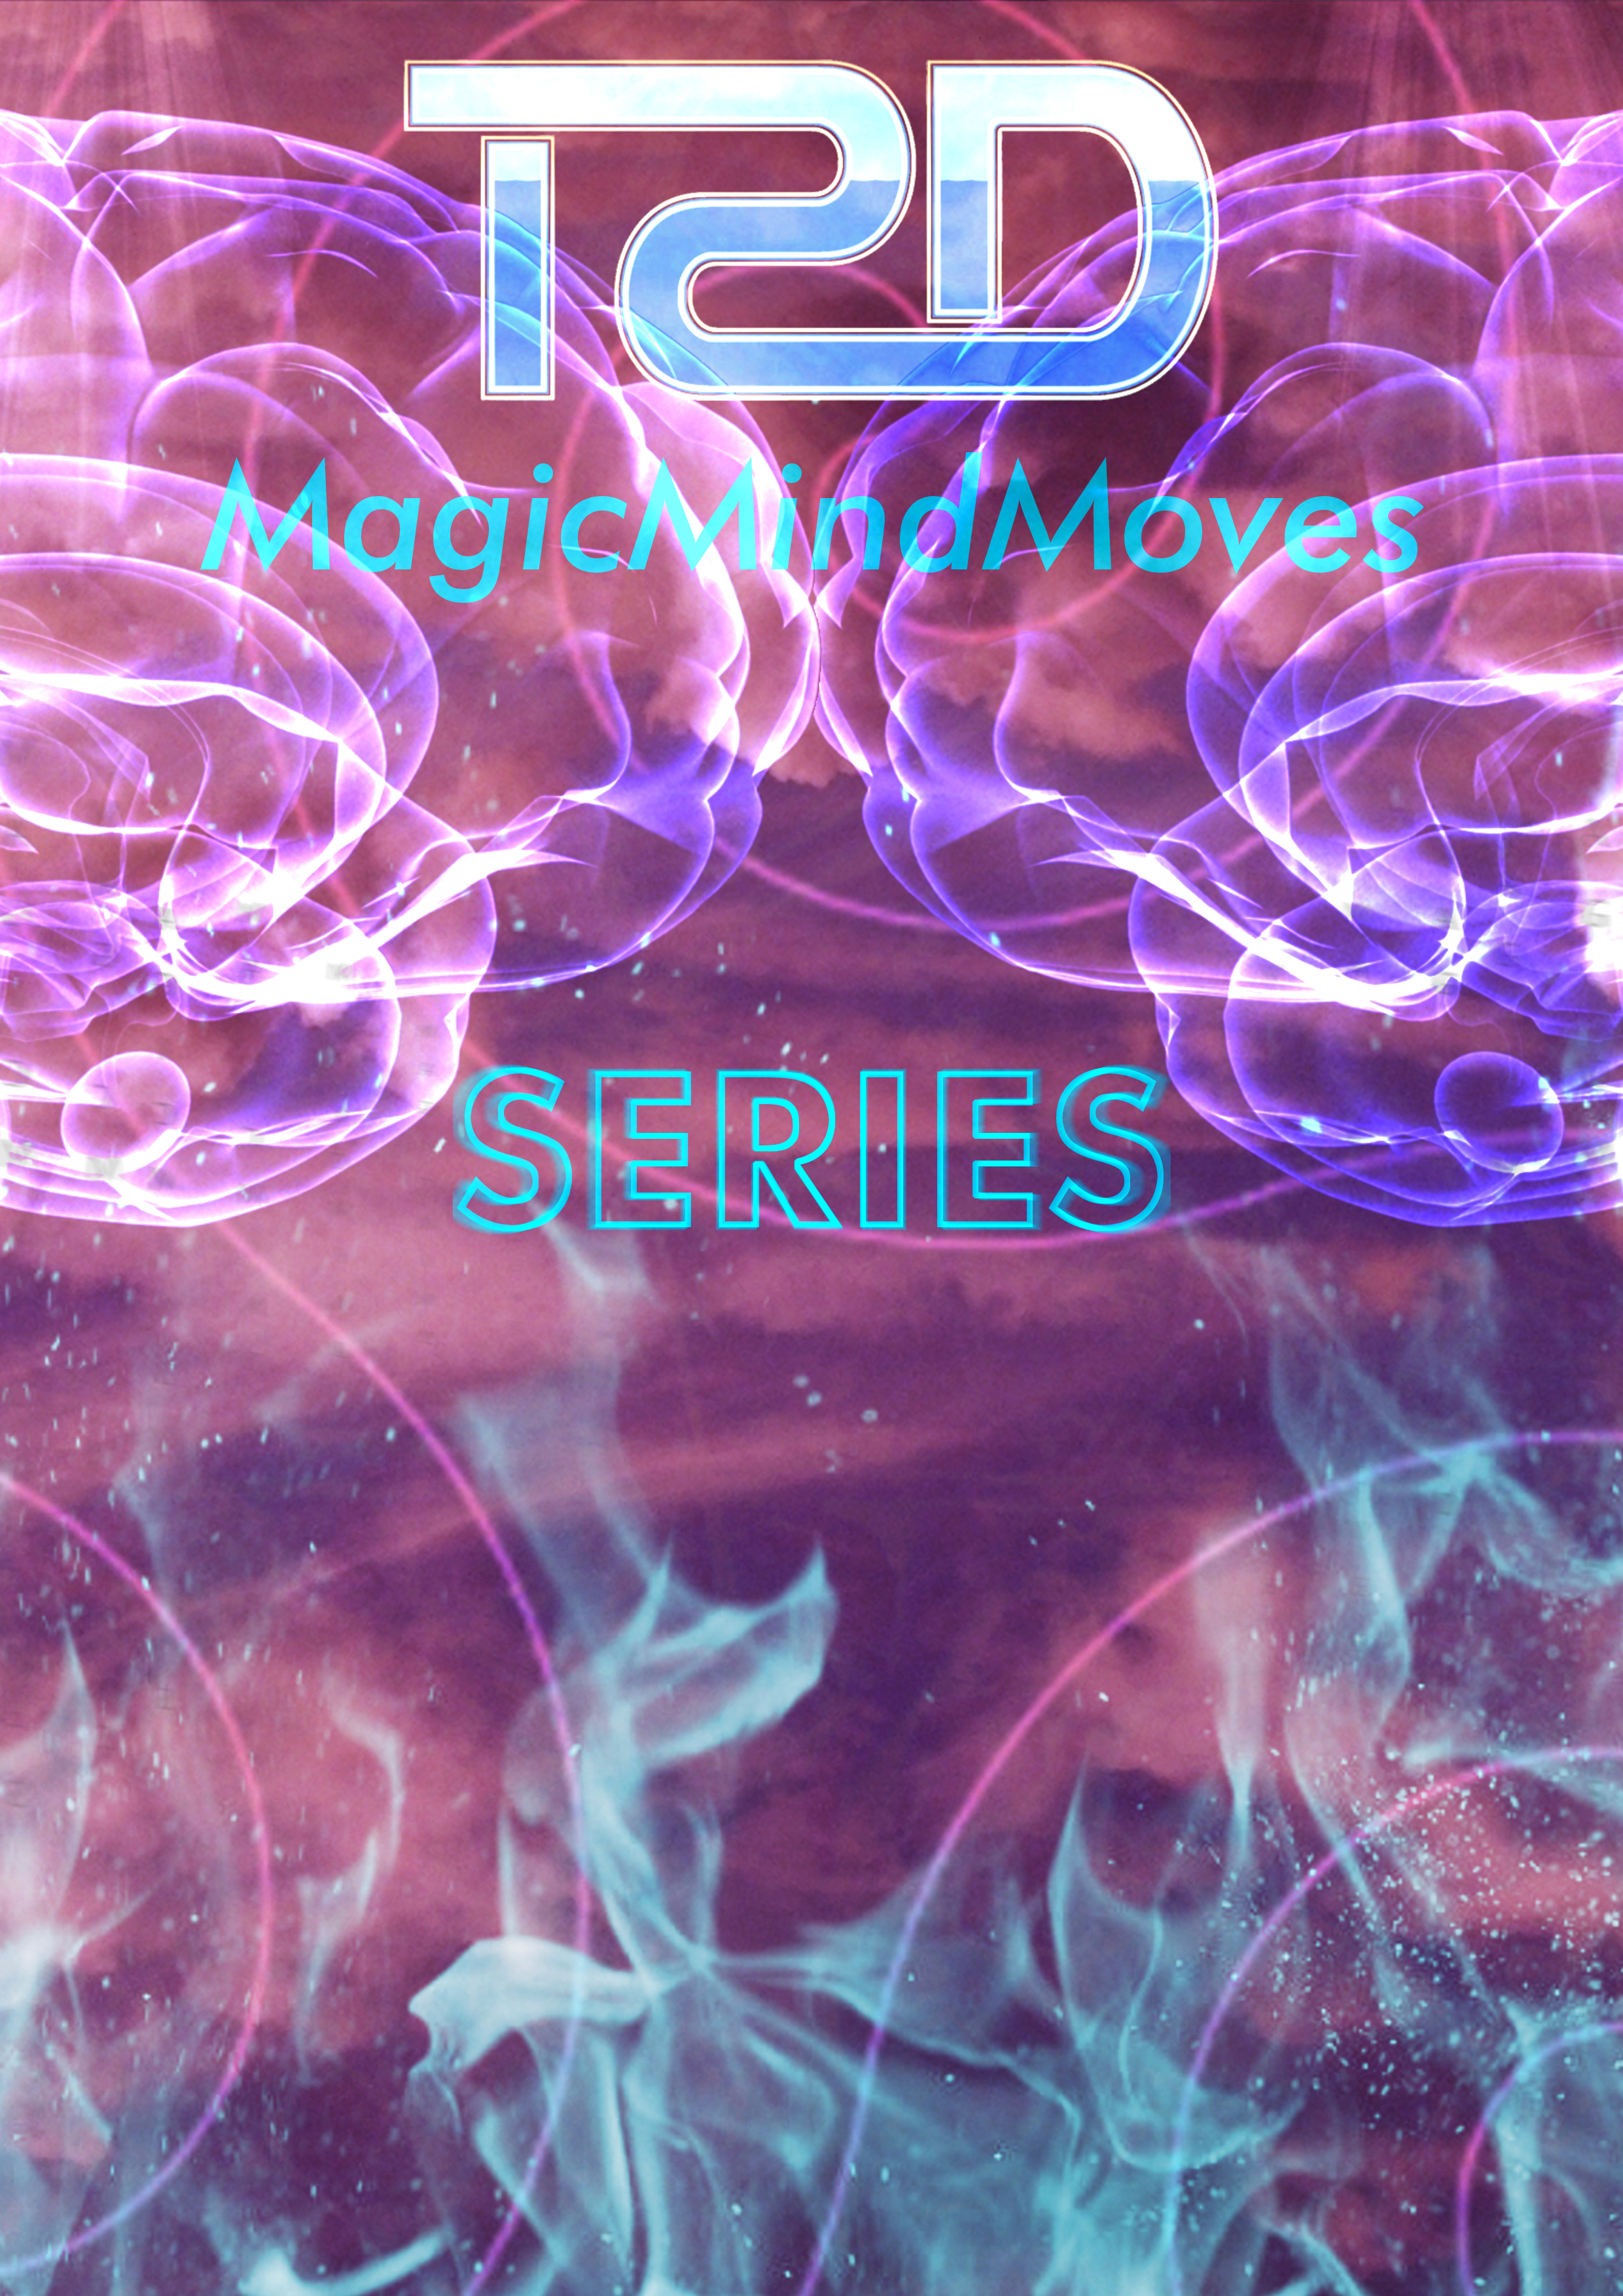 TSD-MW_-_SERIES_-_MagicMindMoves